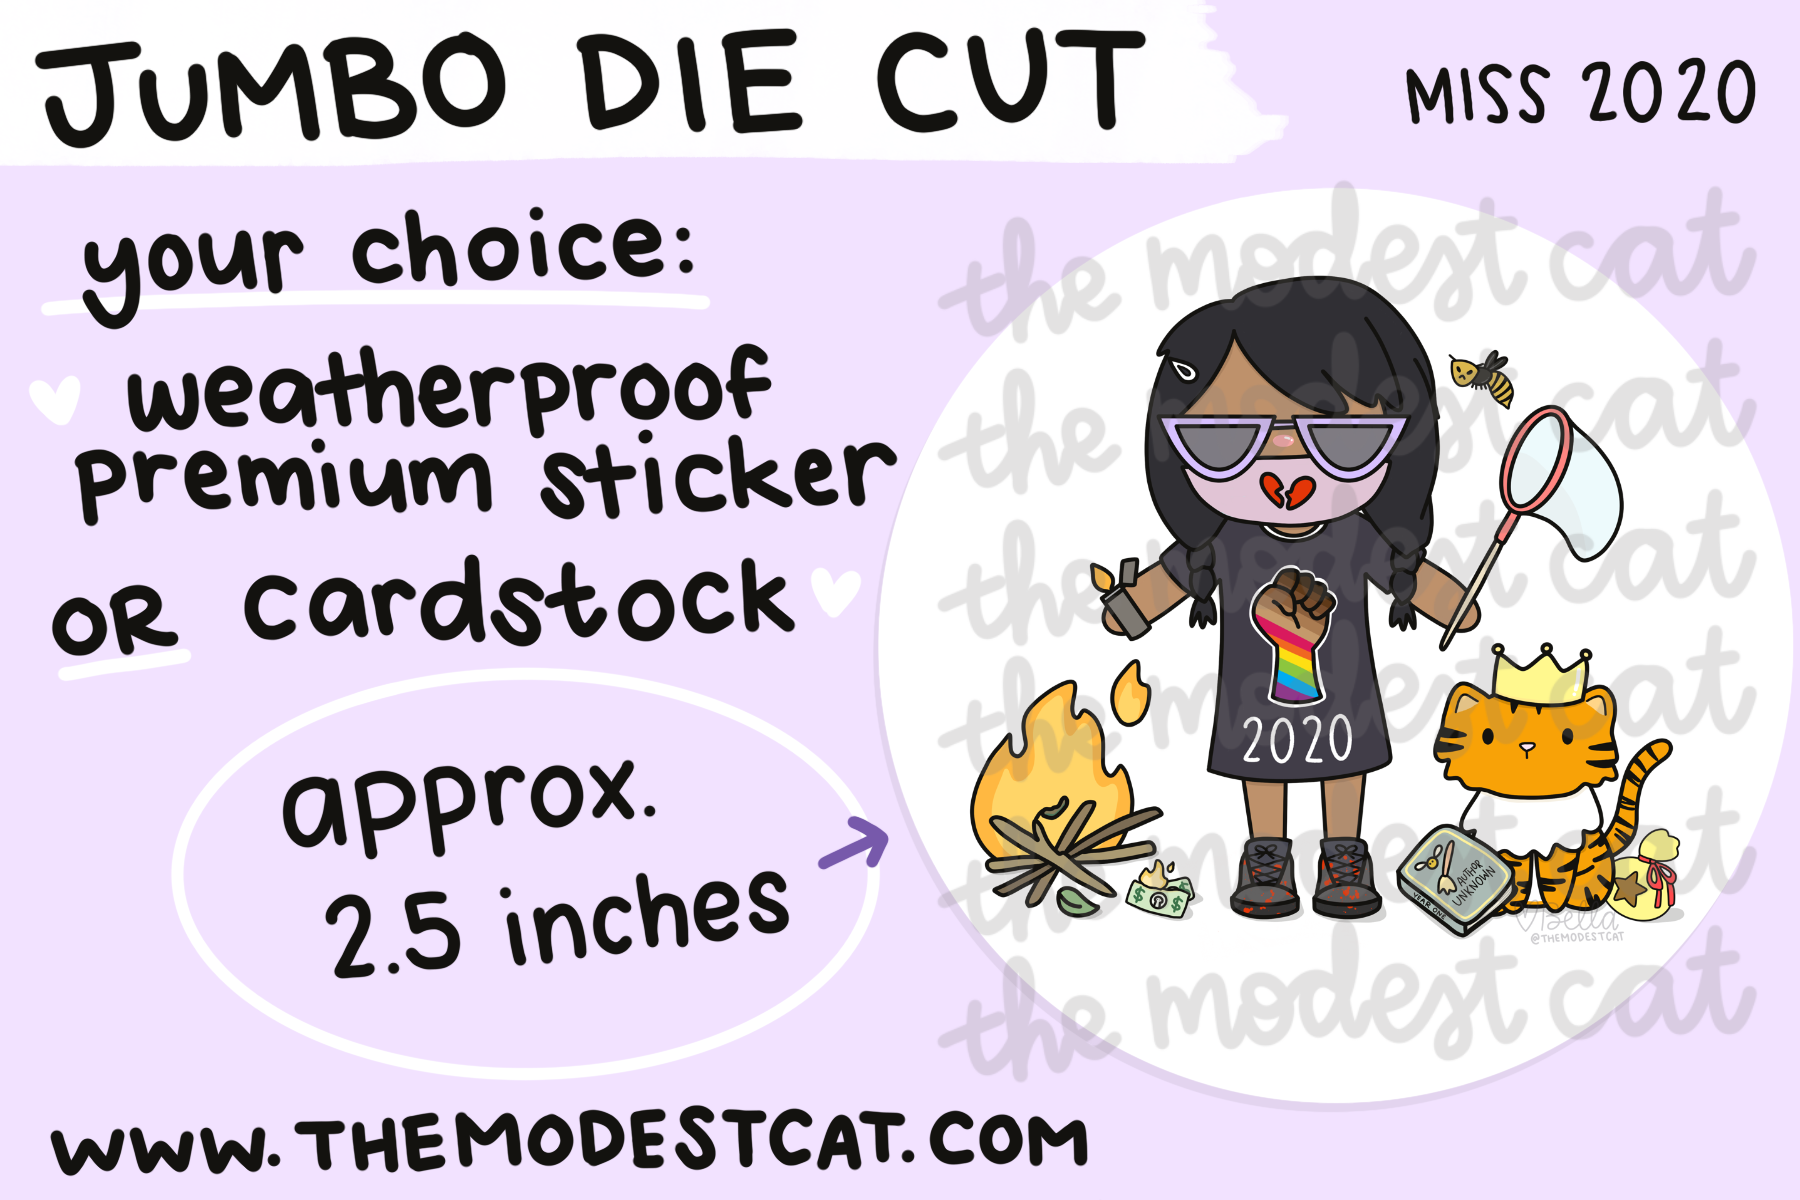 Miss 2020 - Jumbo Die Cut